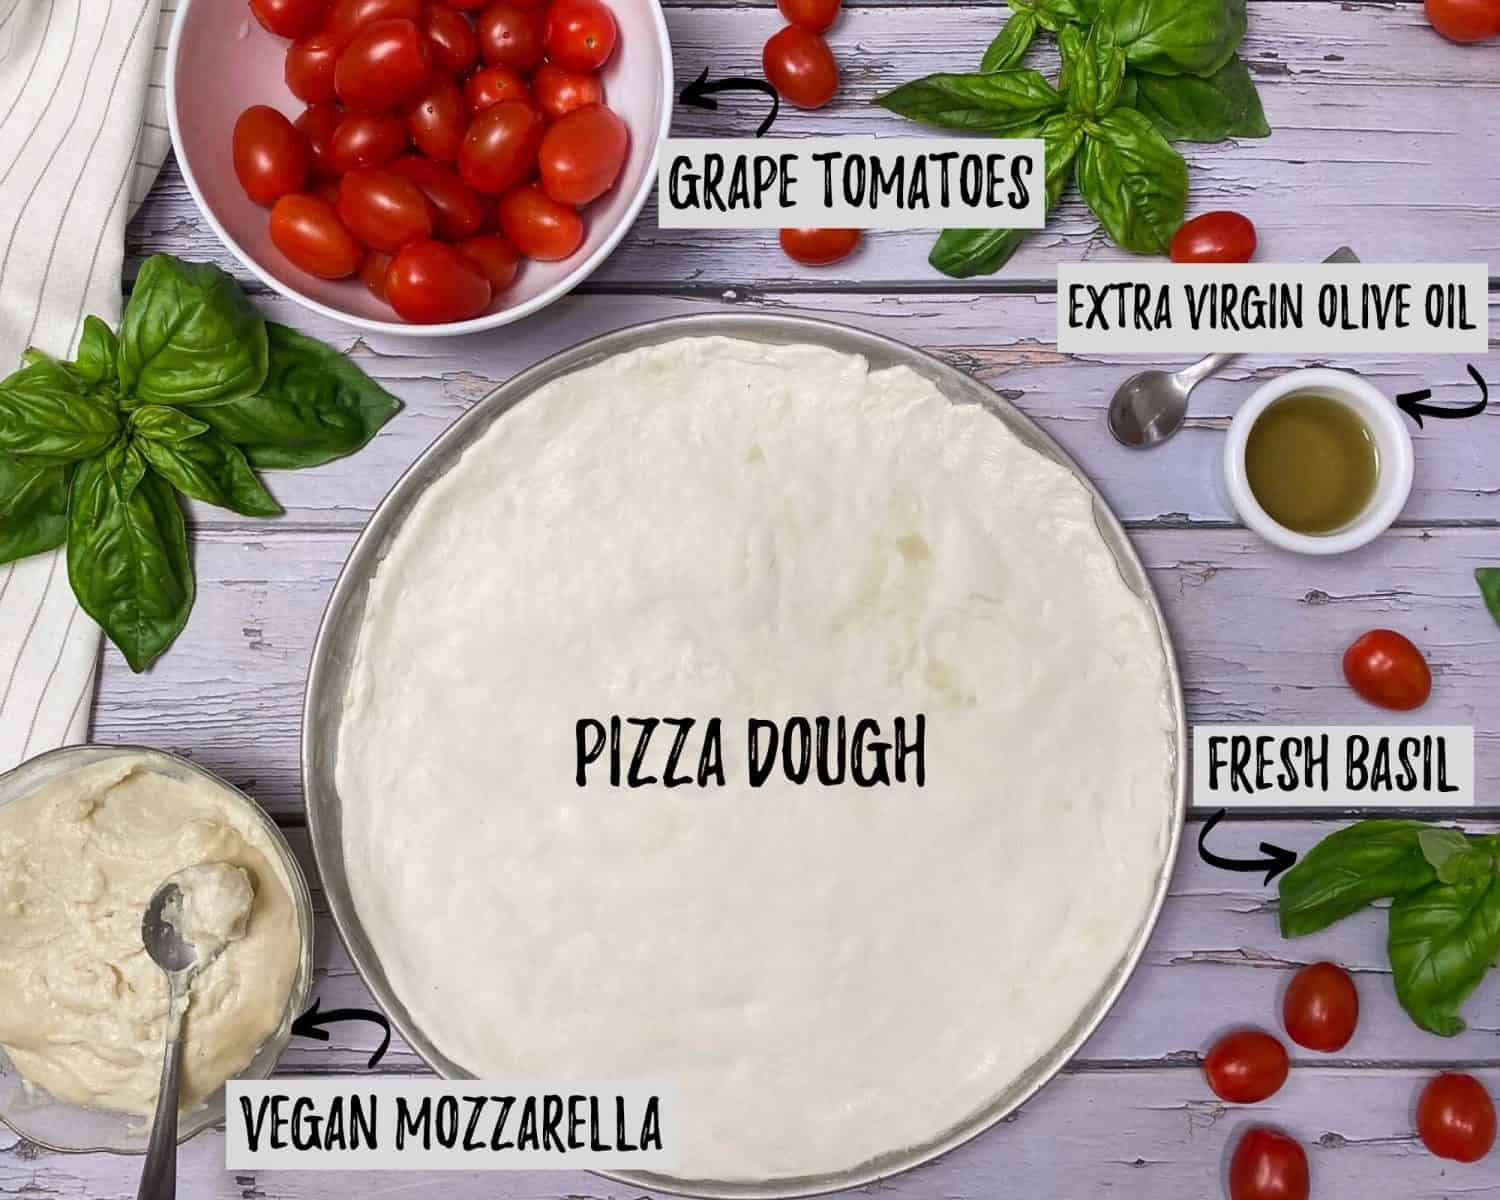 pizza dough stretched onto tray with bowl of tomatoes, cup of olive oil, bowl of vegan cheese and basil scattered around